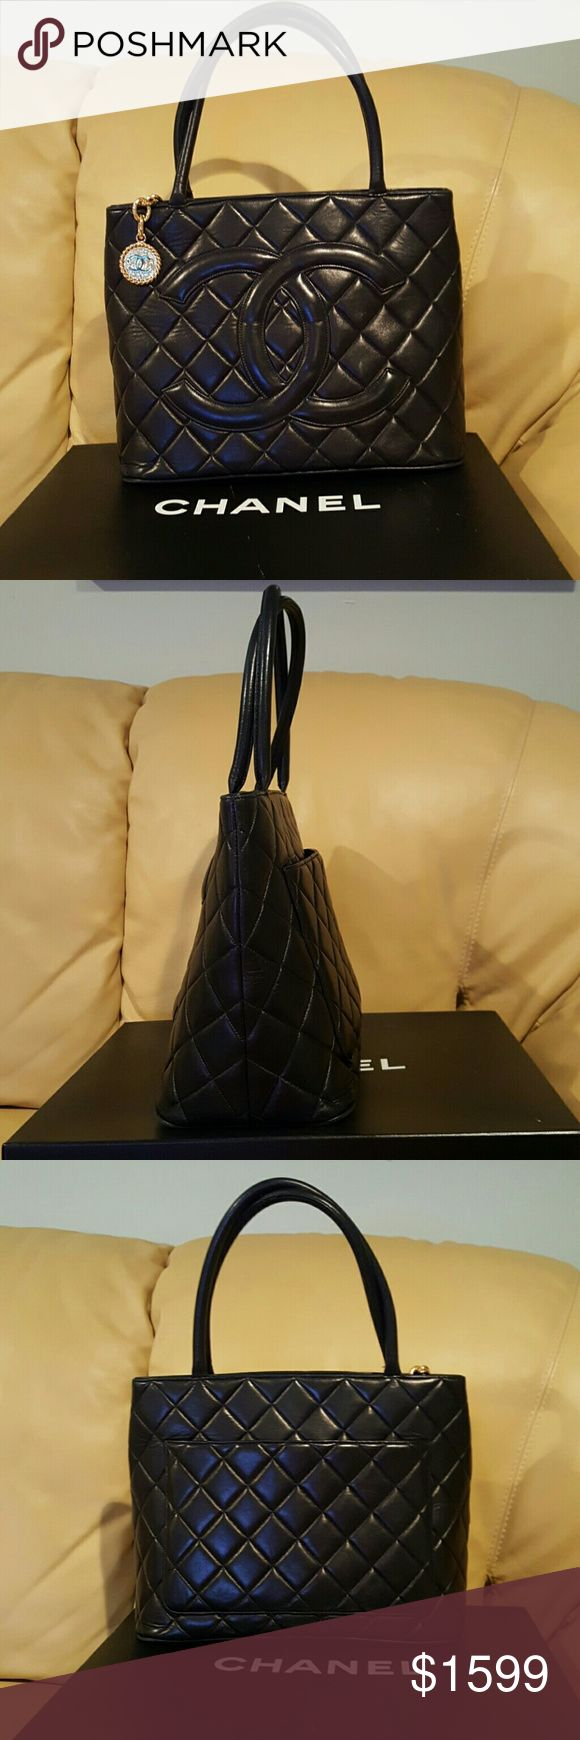 Chanel Black Caviar Classic  Medallion  Bag Pre-owned in a good condition CHANEL Bags Totes